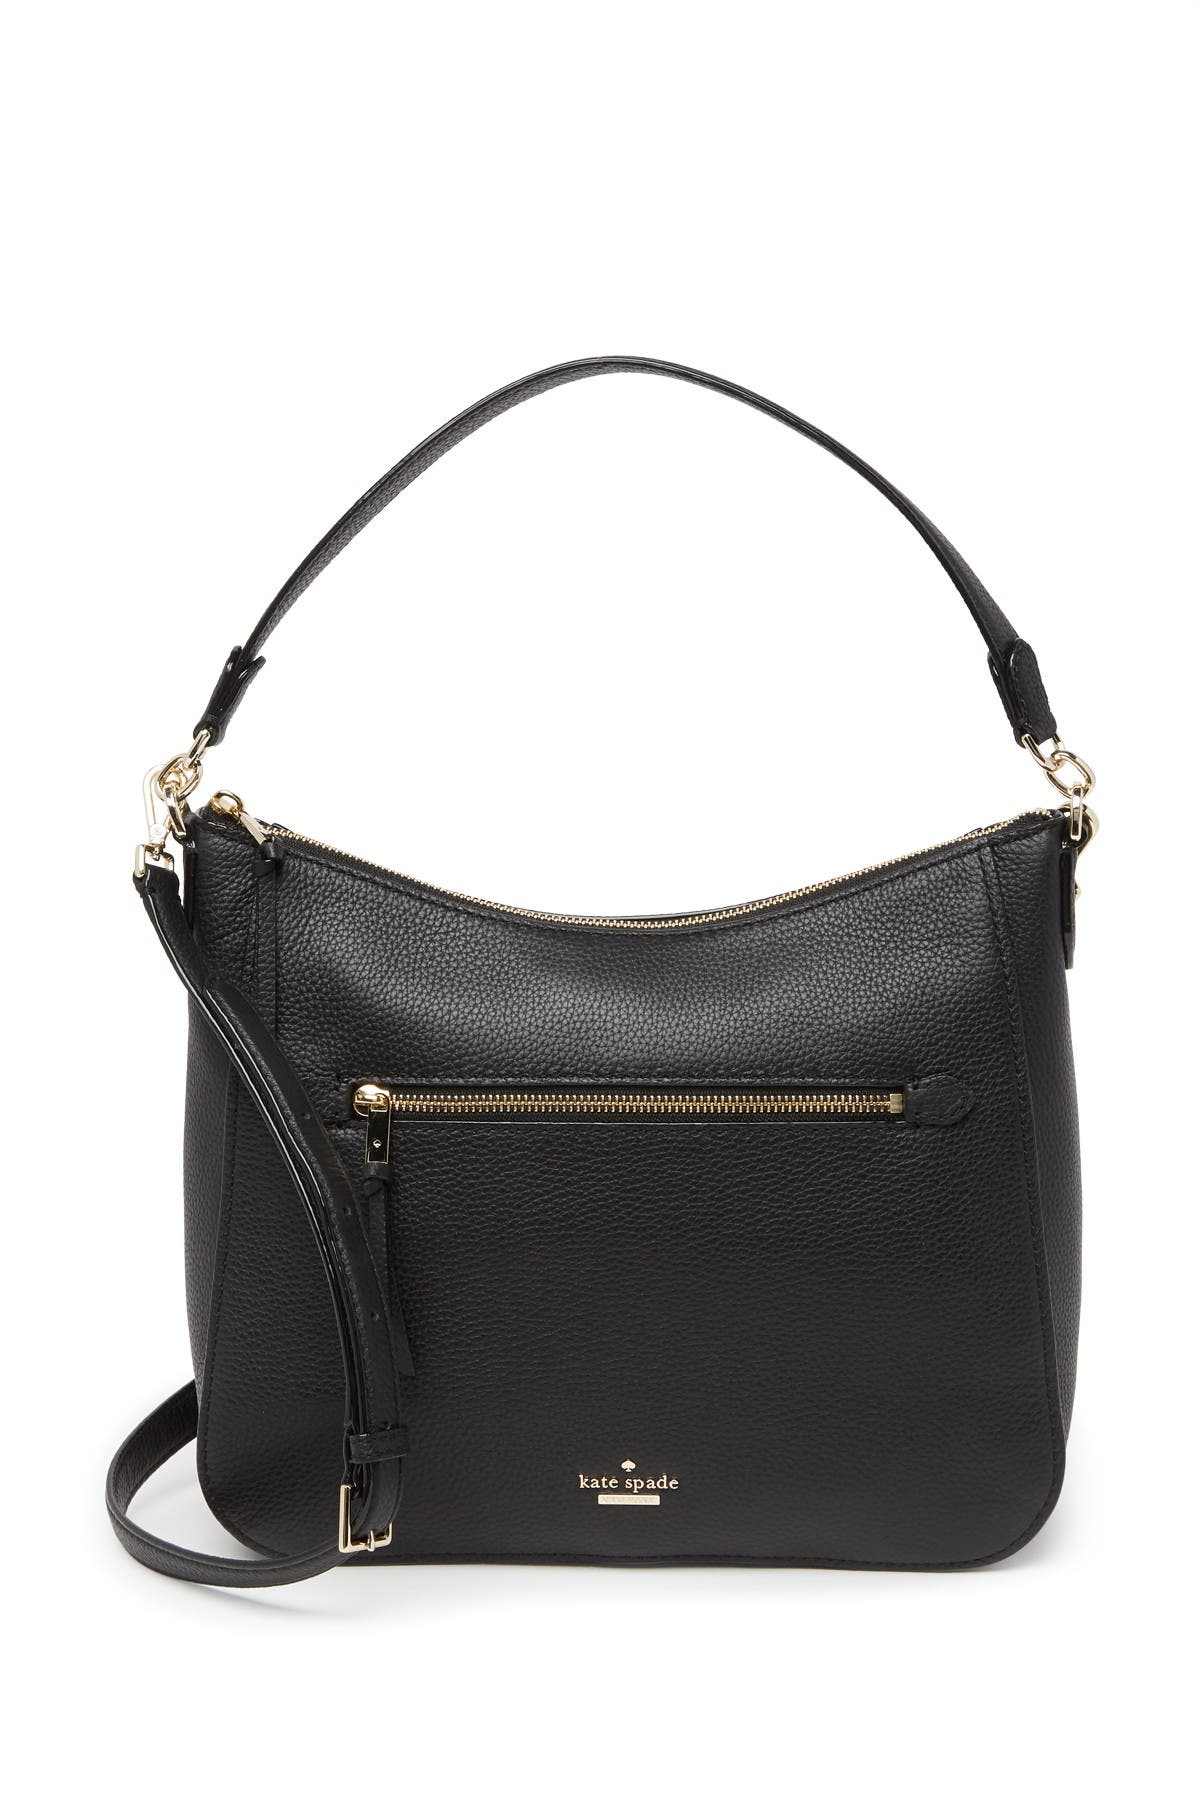 Image of kate spade new york jackson street  quincy leather hobo